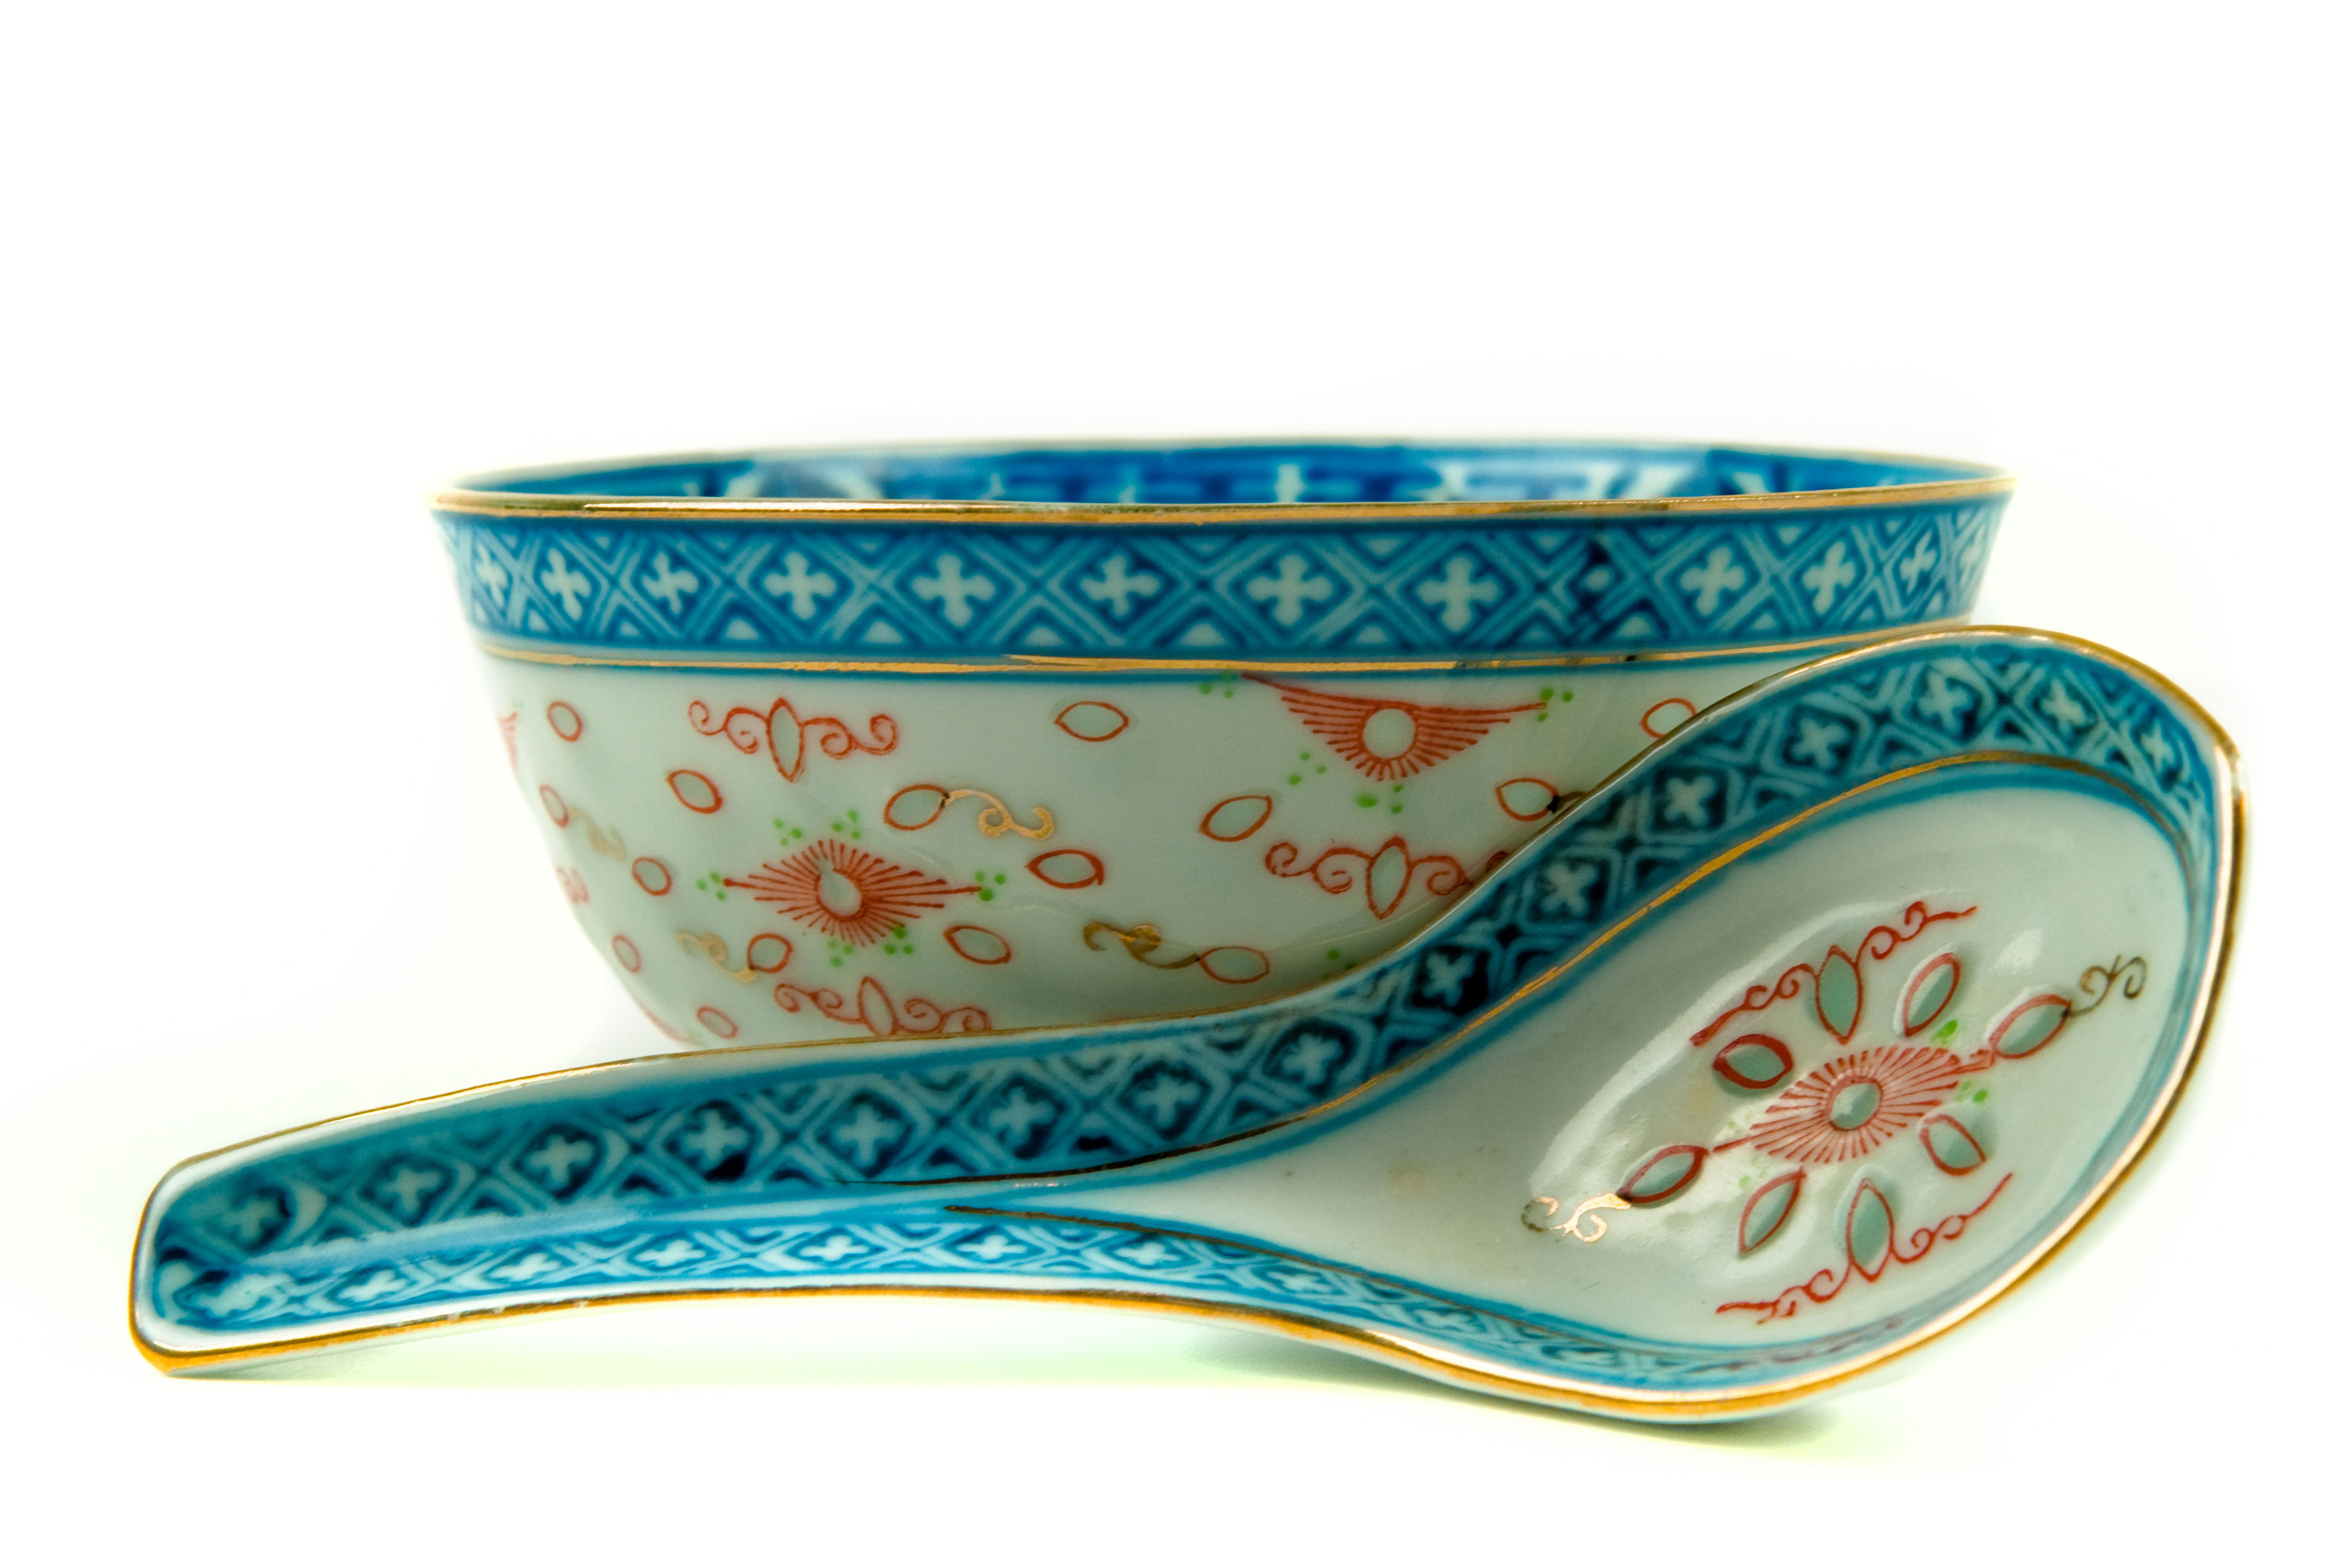 A Chinese bowl and ladle